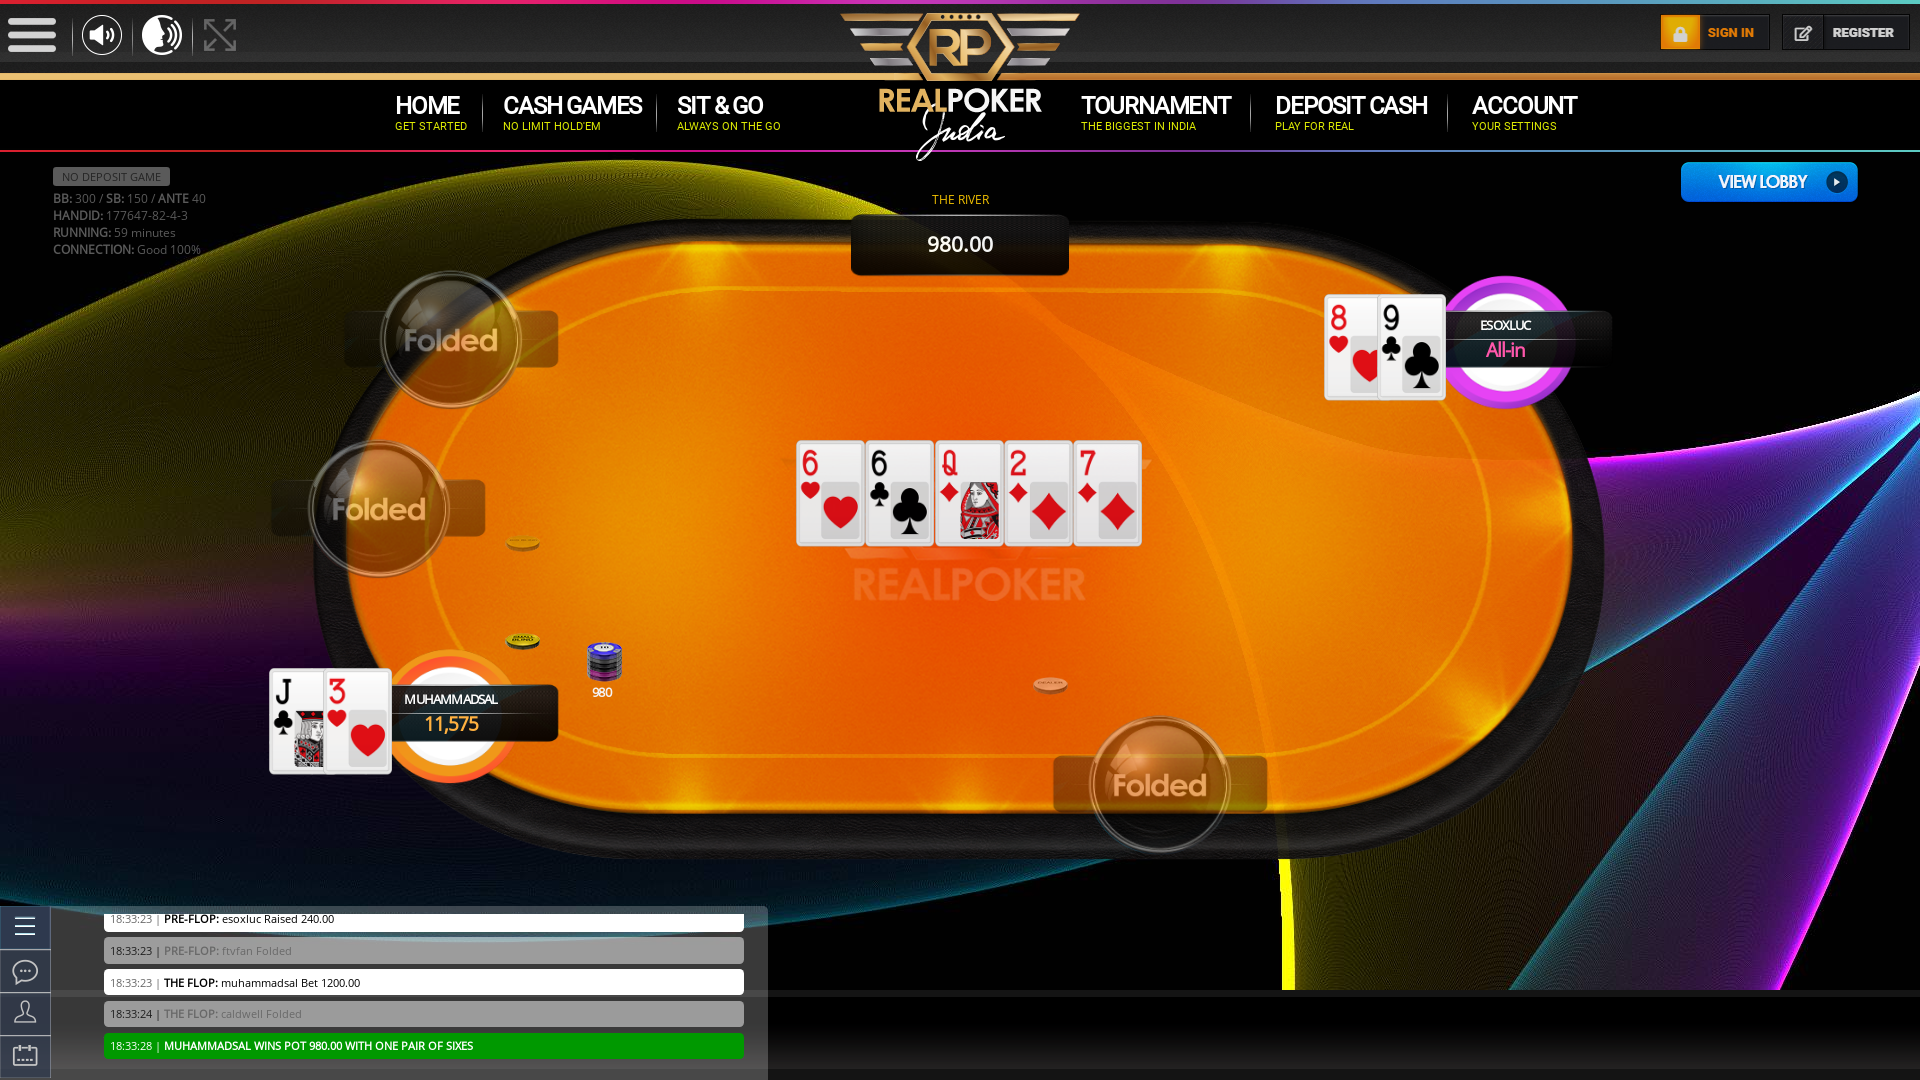 Indian poker on a 10 player table in the 58th minute